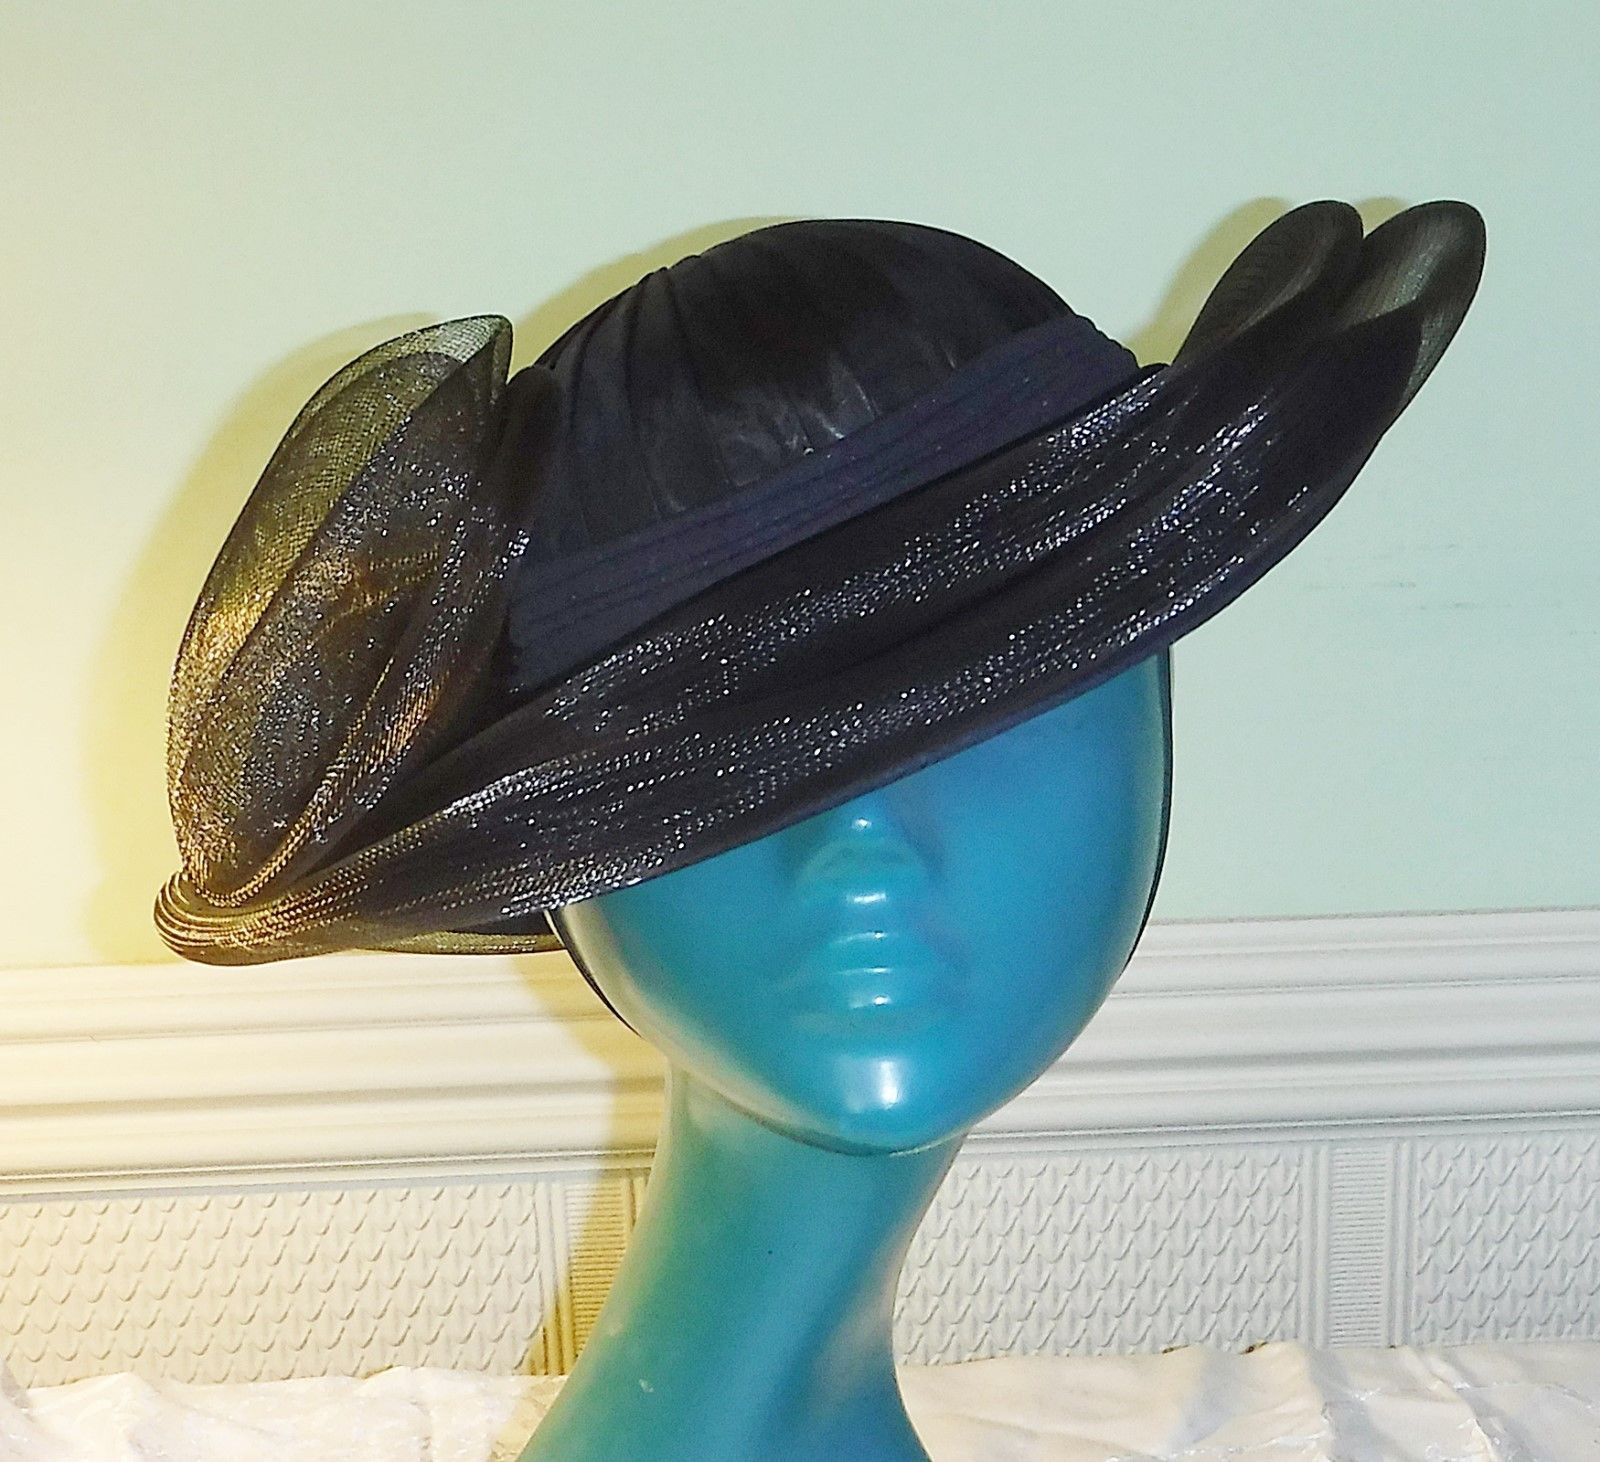 C & A*  BLACK STYLISED BOWLER HAT PLEATED TAFFETTA CROWN NET ROSSETTES PERCHER